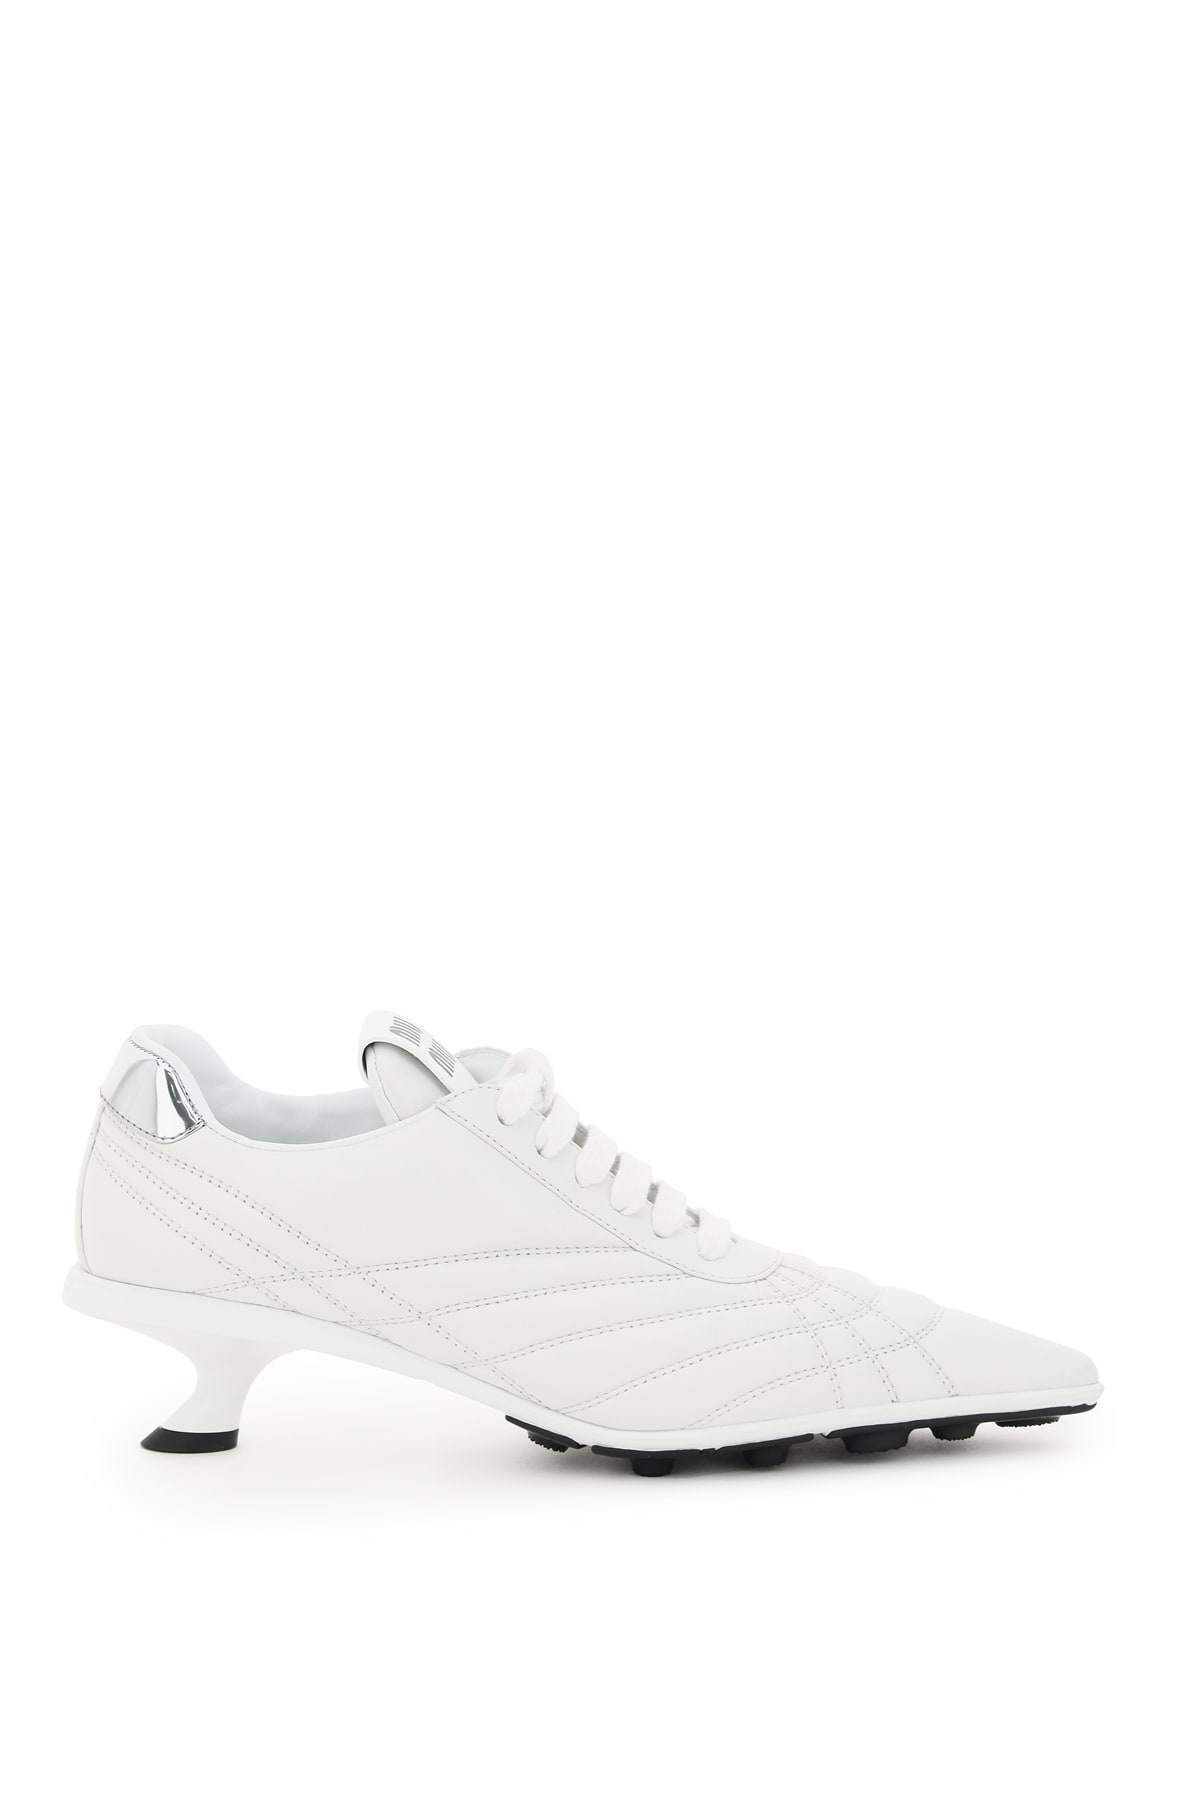 Miu Miu Leathers QUILTED NAPPA HEELED SNEAKERS